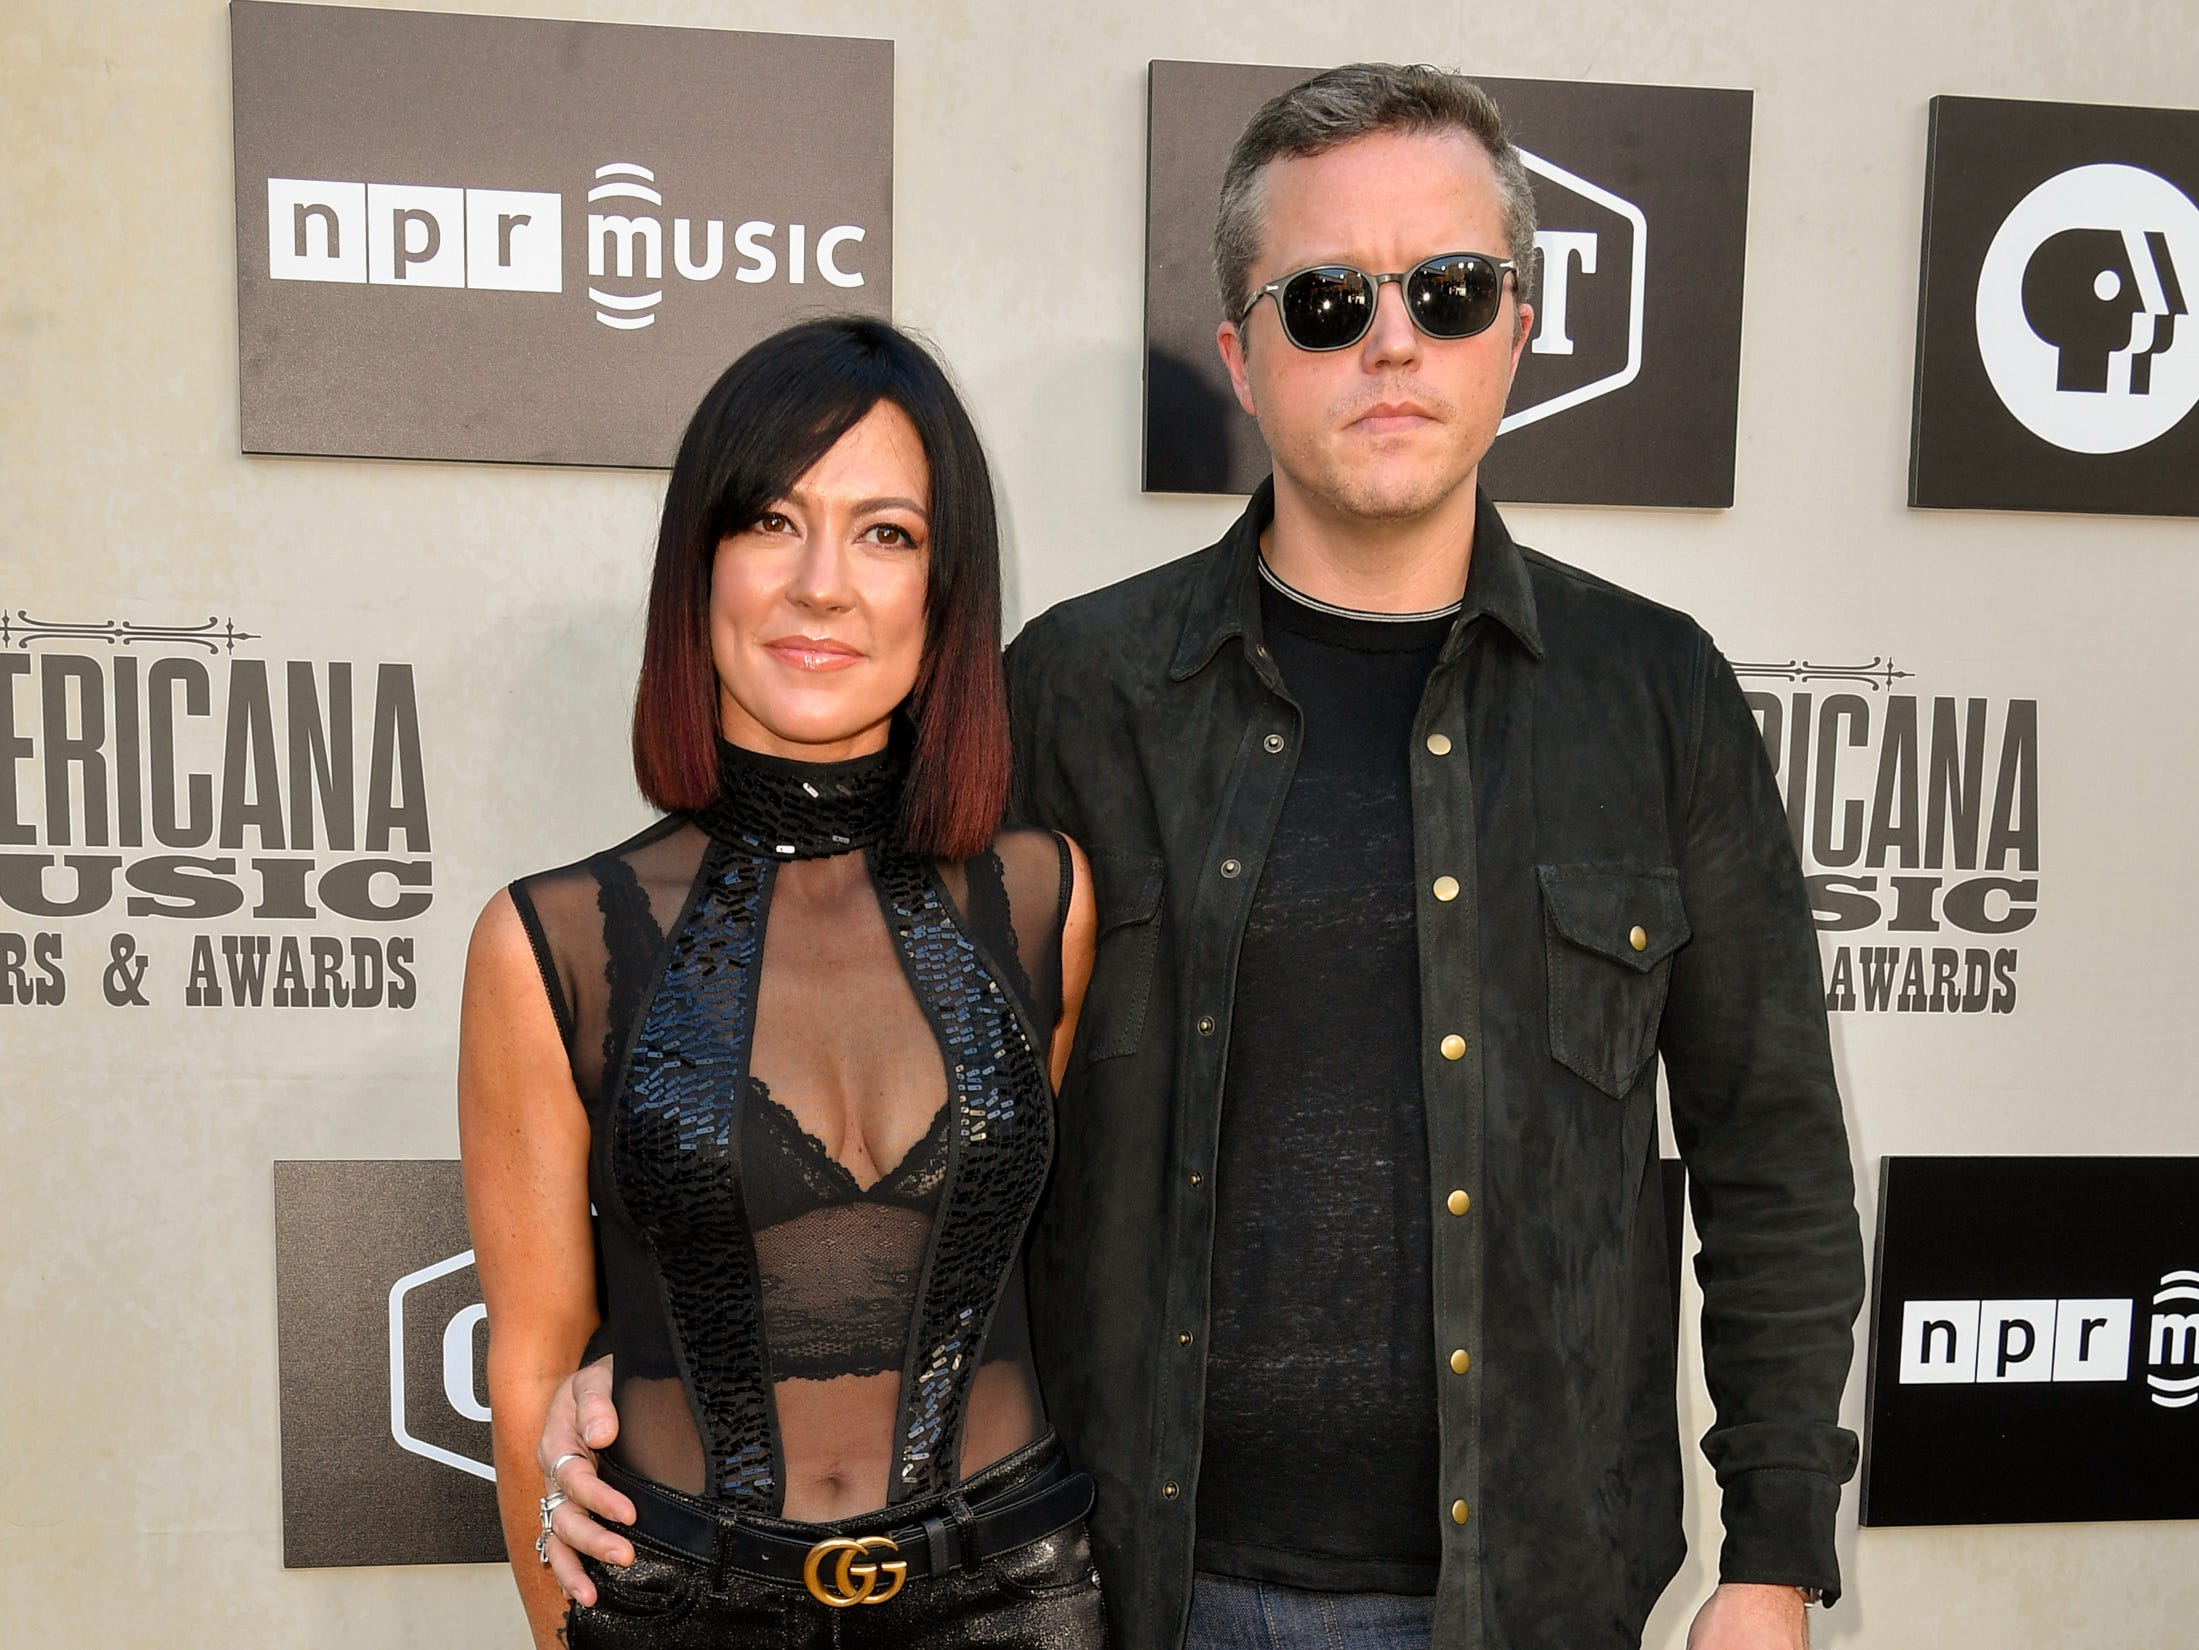 Amanda Shires and Jason Isbell pose on the red carpet before the 2018 Americana Honors and Awards show at the Ryman Auditorium in Nashville, Tenn., Wednesday, Sept. 12, 2018.